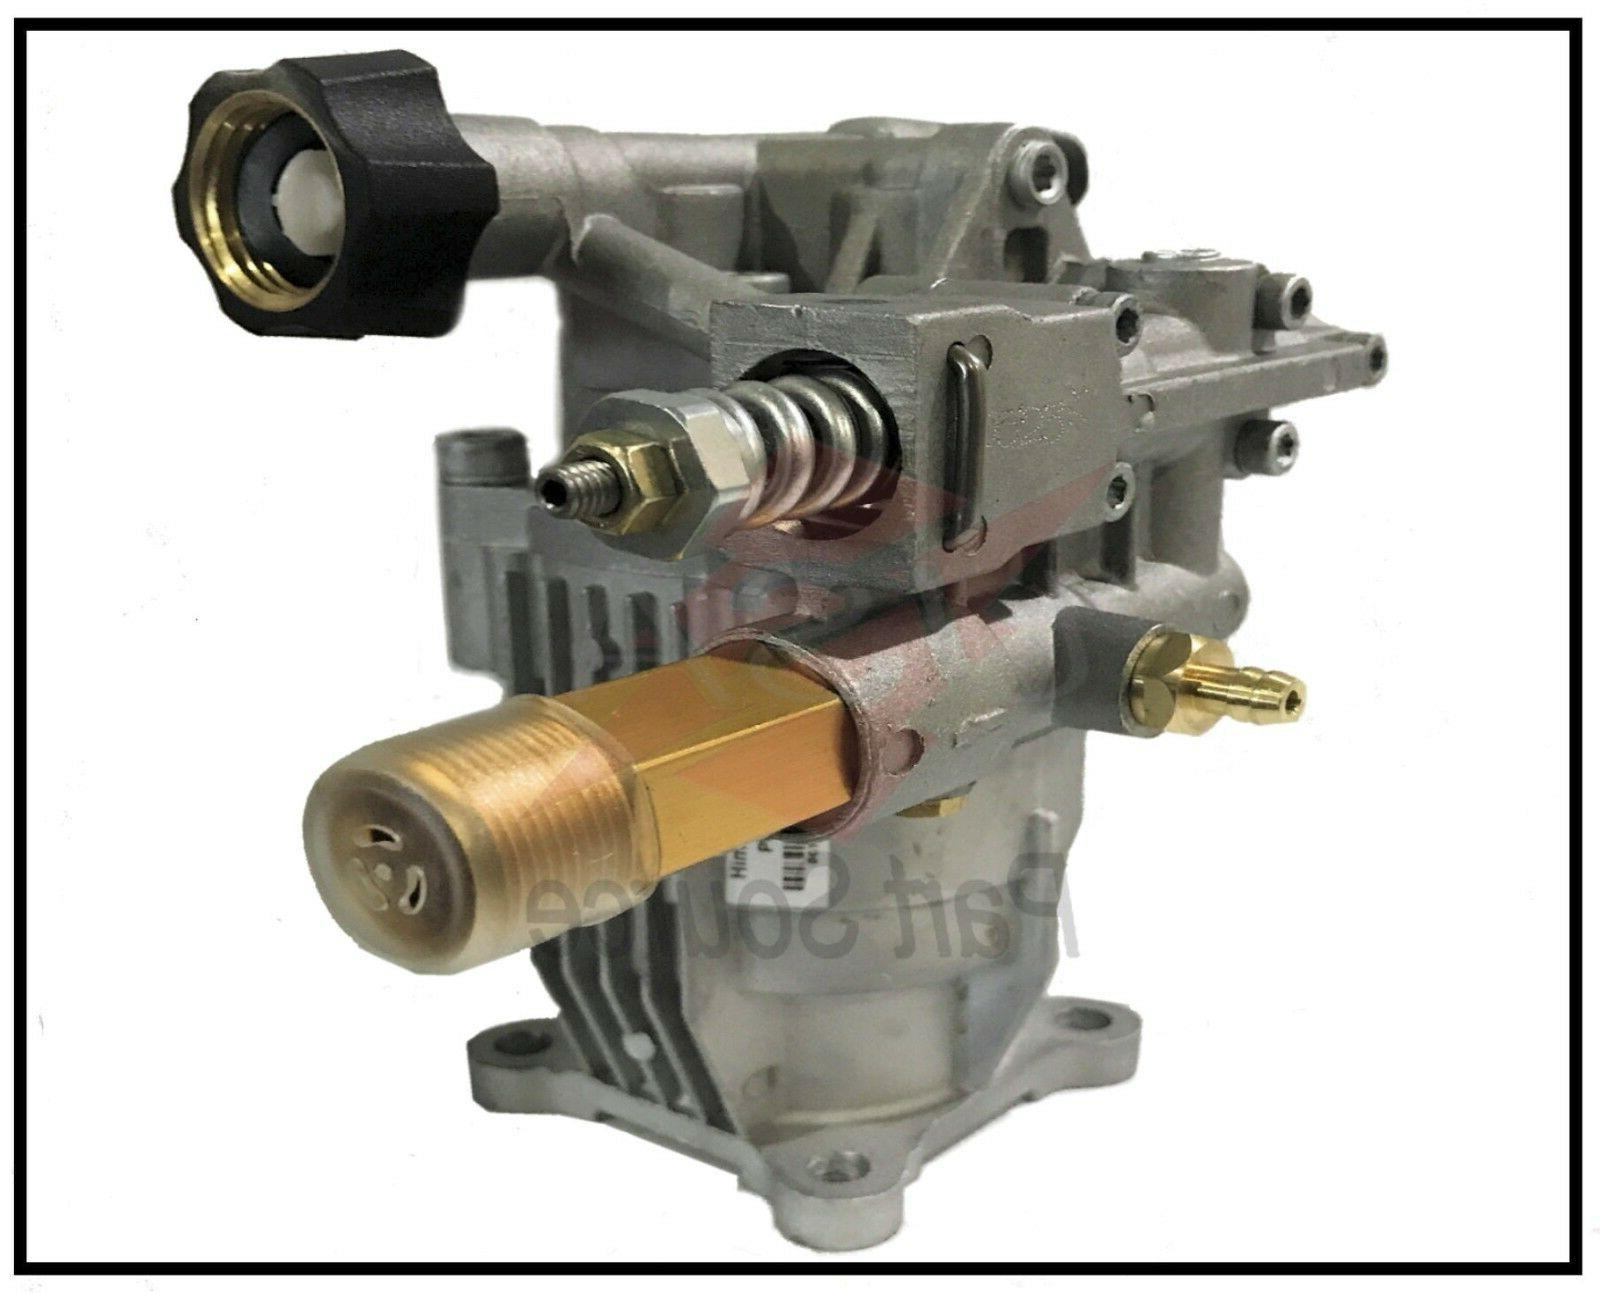 3000 psi PRESSURE WASHER Water PUMP Karcher G2500HT G2600OR